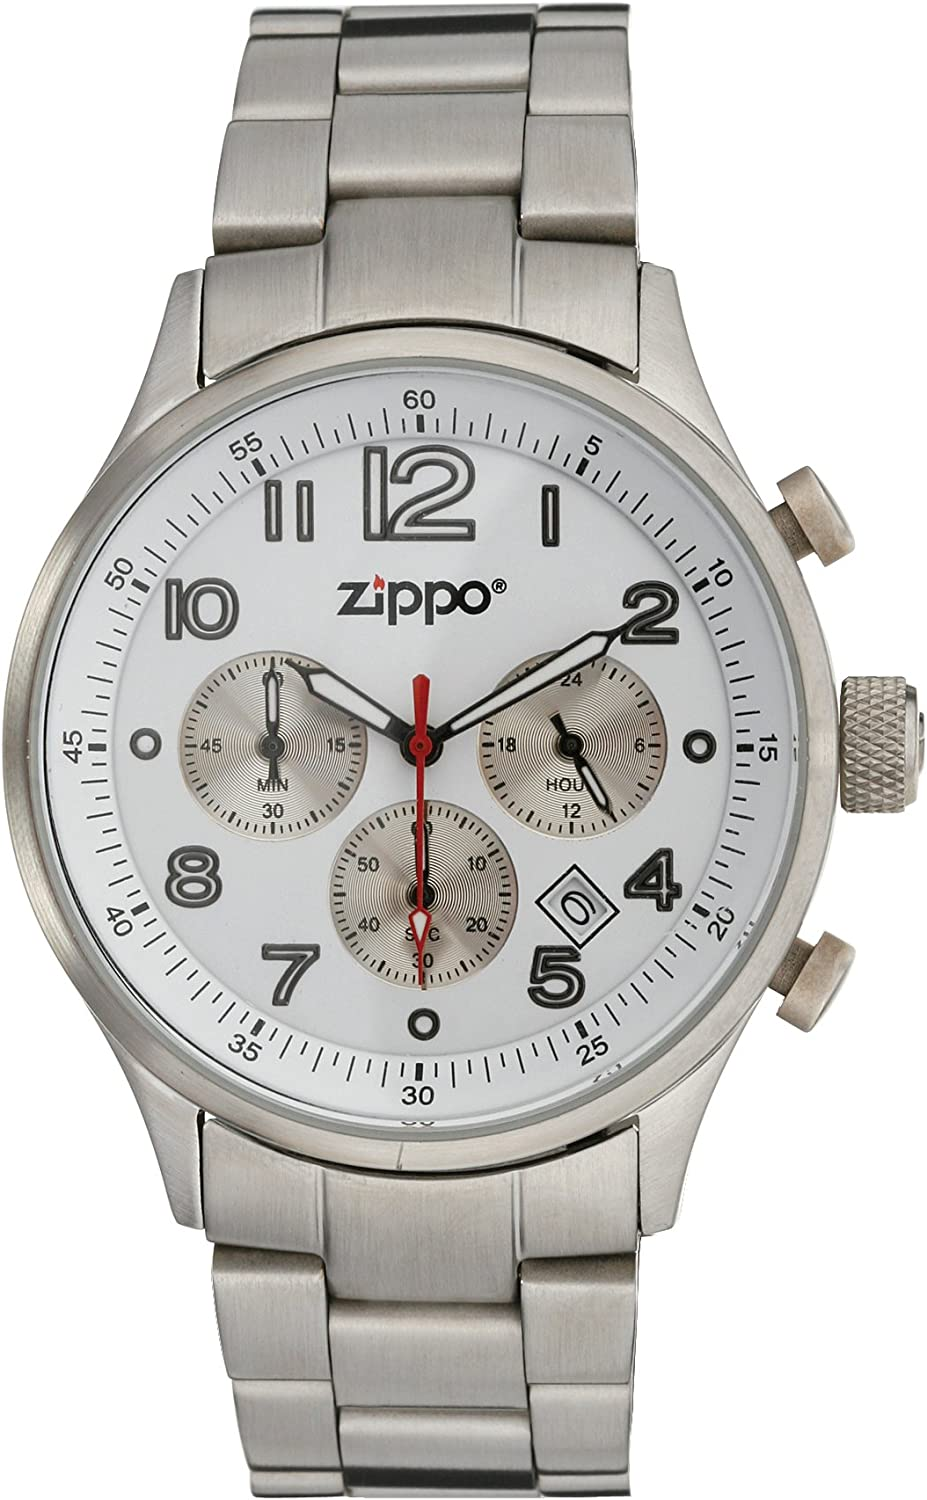 Zippo Sports Watch with Chronograph White Dial and Solid Stainless Steel Band, Chrome